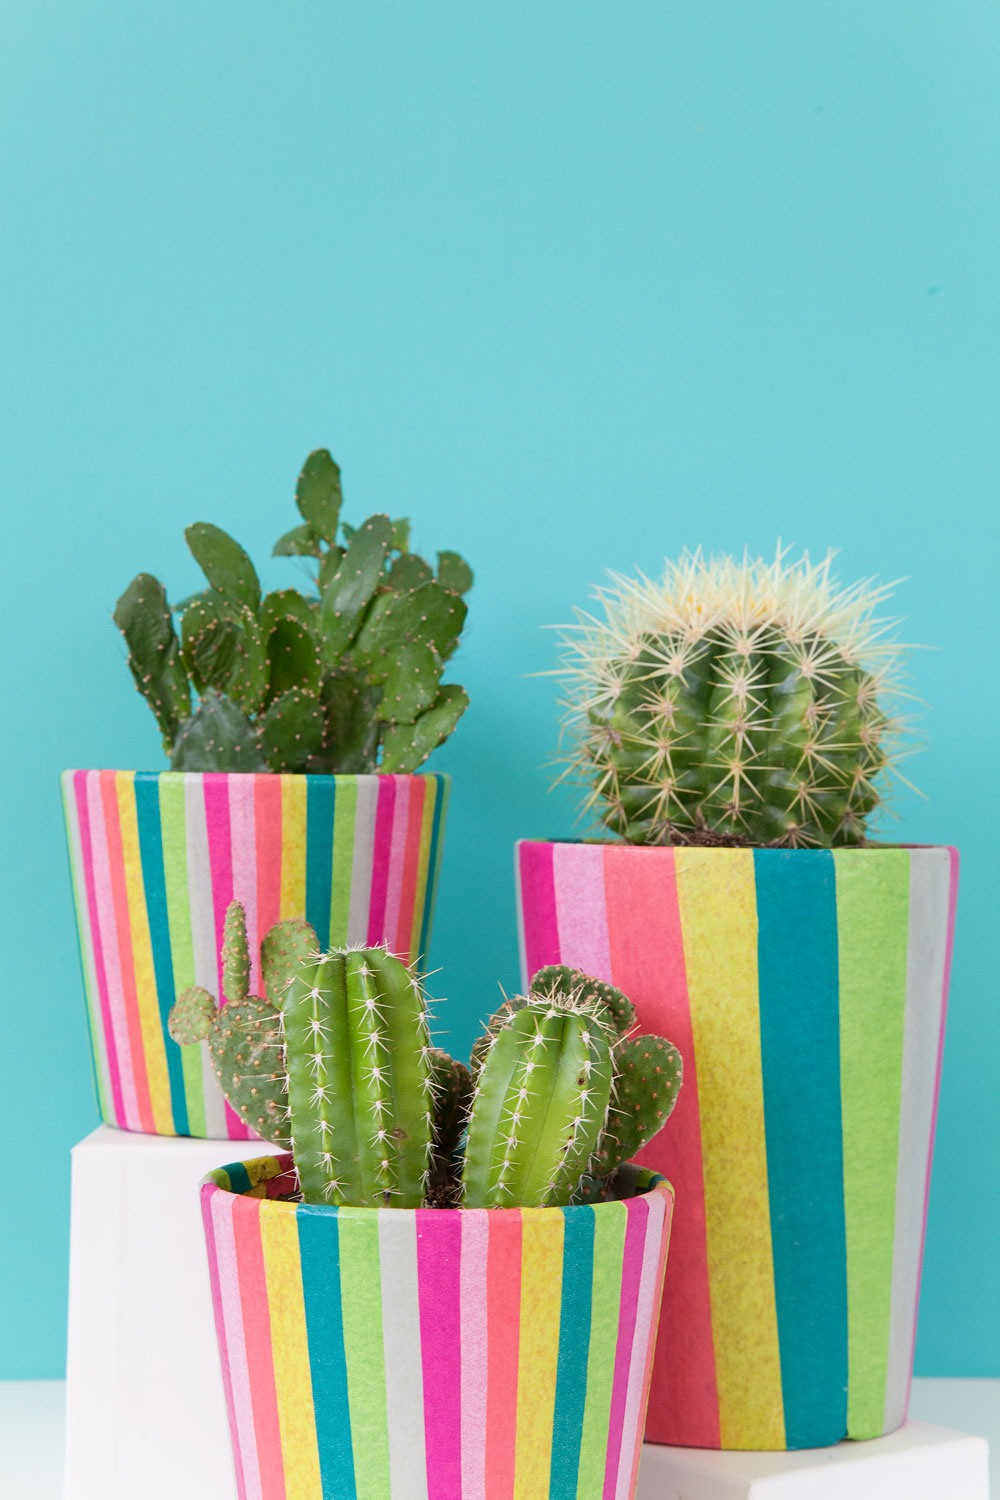 DIY-colorful-striped-pots-and-cute-cacti